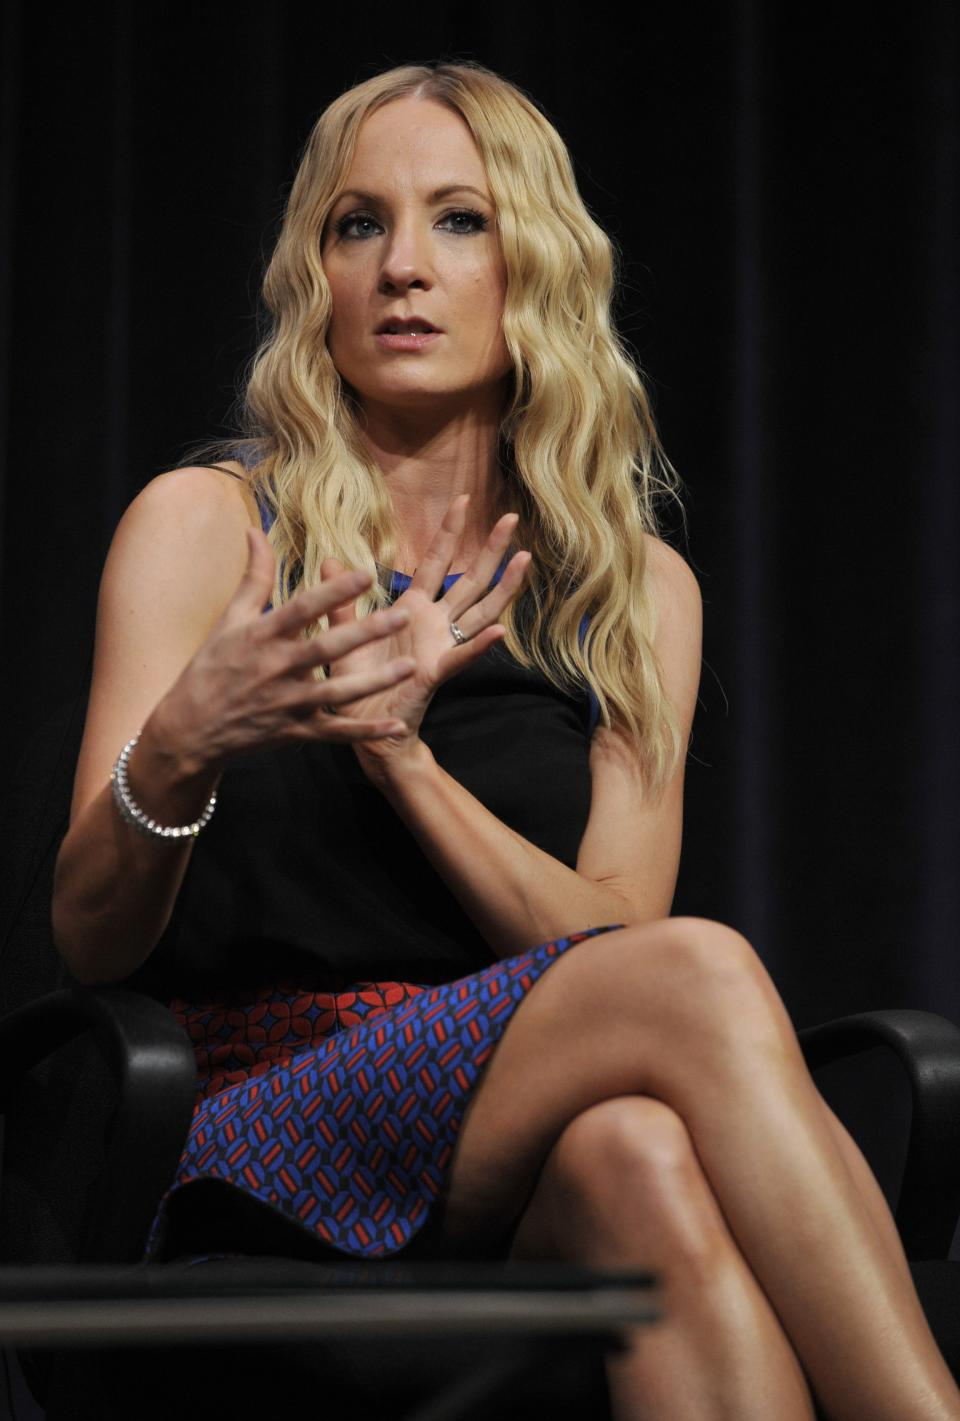 "Joanne Froggatt, a cast member in the Masterpiece series ""Downton Abbey,"" makes a point during a panel discussion on the show at the PBS Summer 2013 TCA press tour at the Beverly Hilton Hotel on Tuesday, Aug. 6, 2013 in Beverly Hills, Calif. (Photo by Chris Pizzello/Invision/AP)"